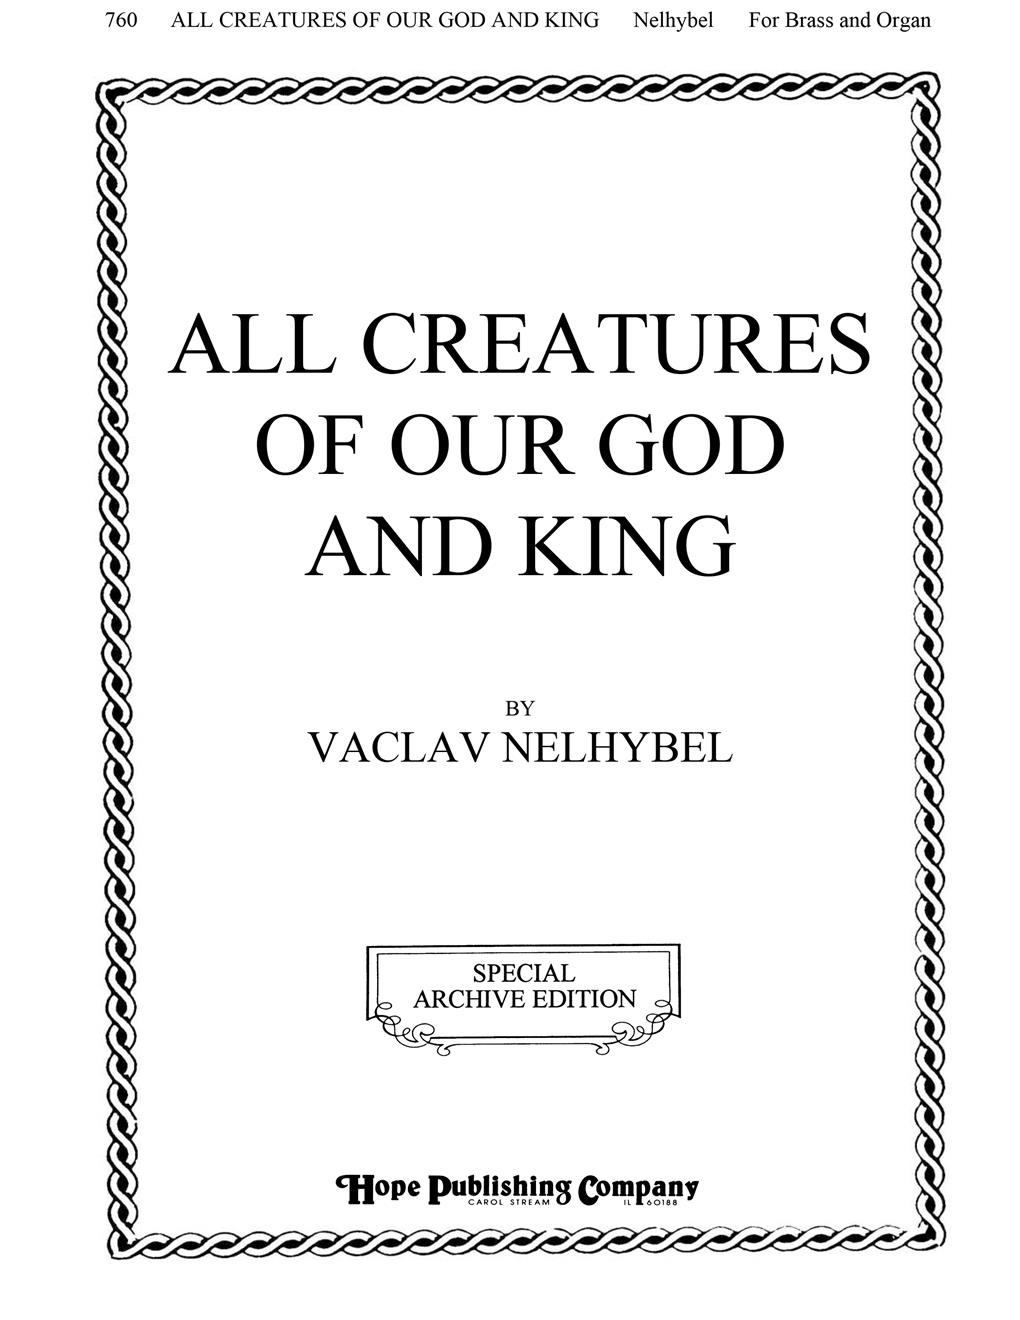 All Creatures of Our God and King - Organ and Brass Cover Image